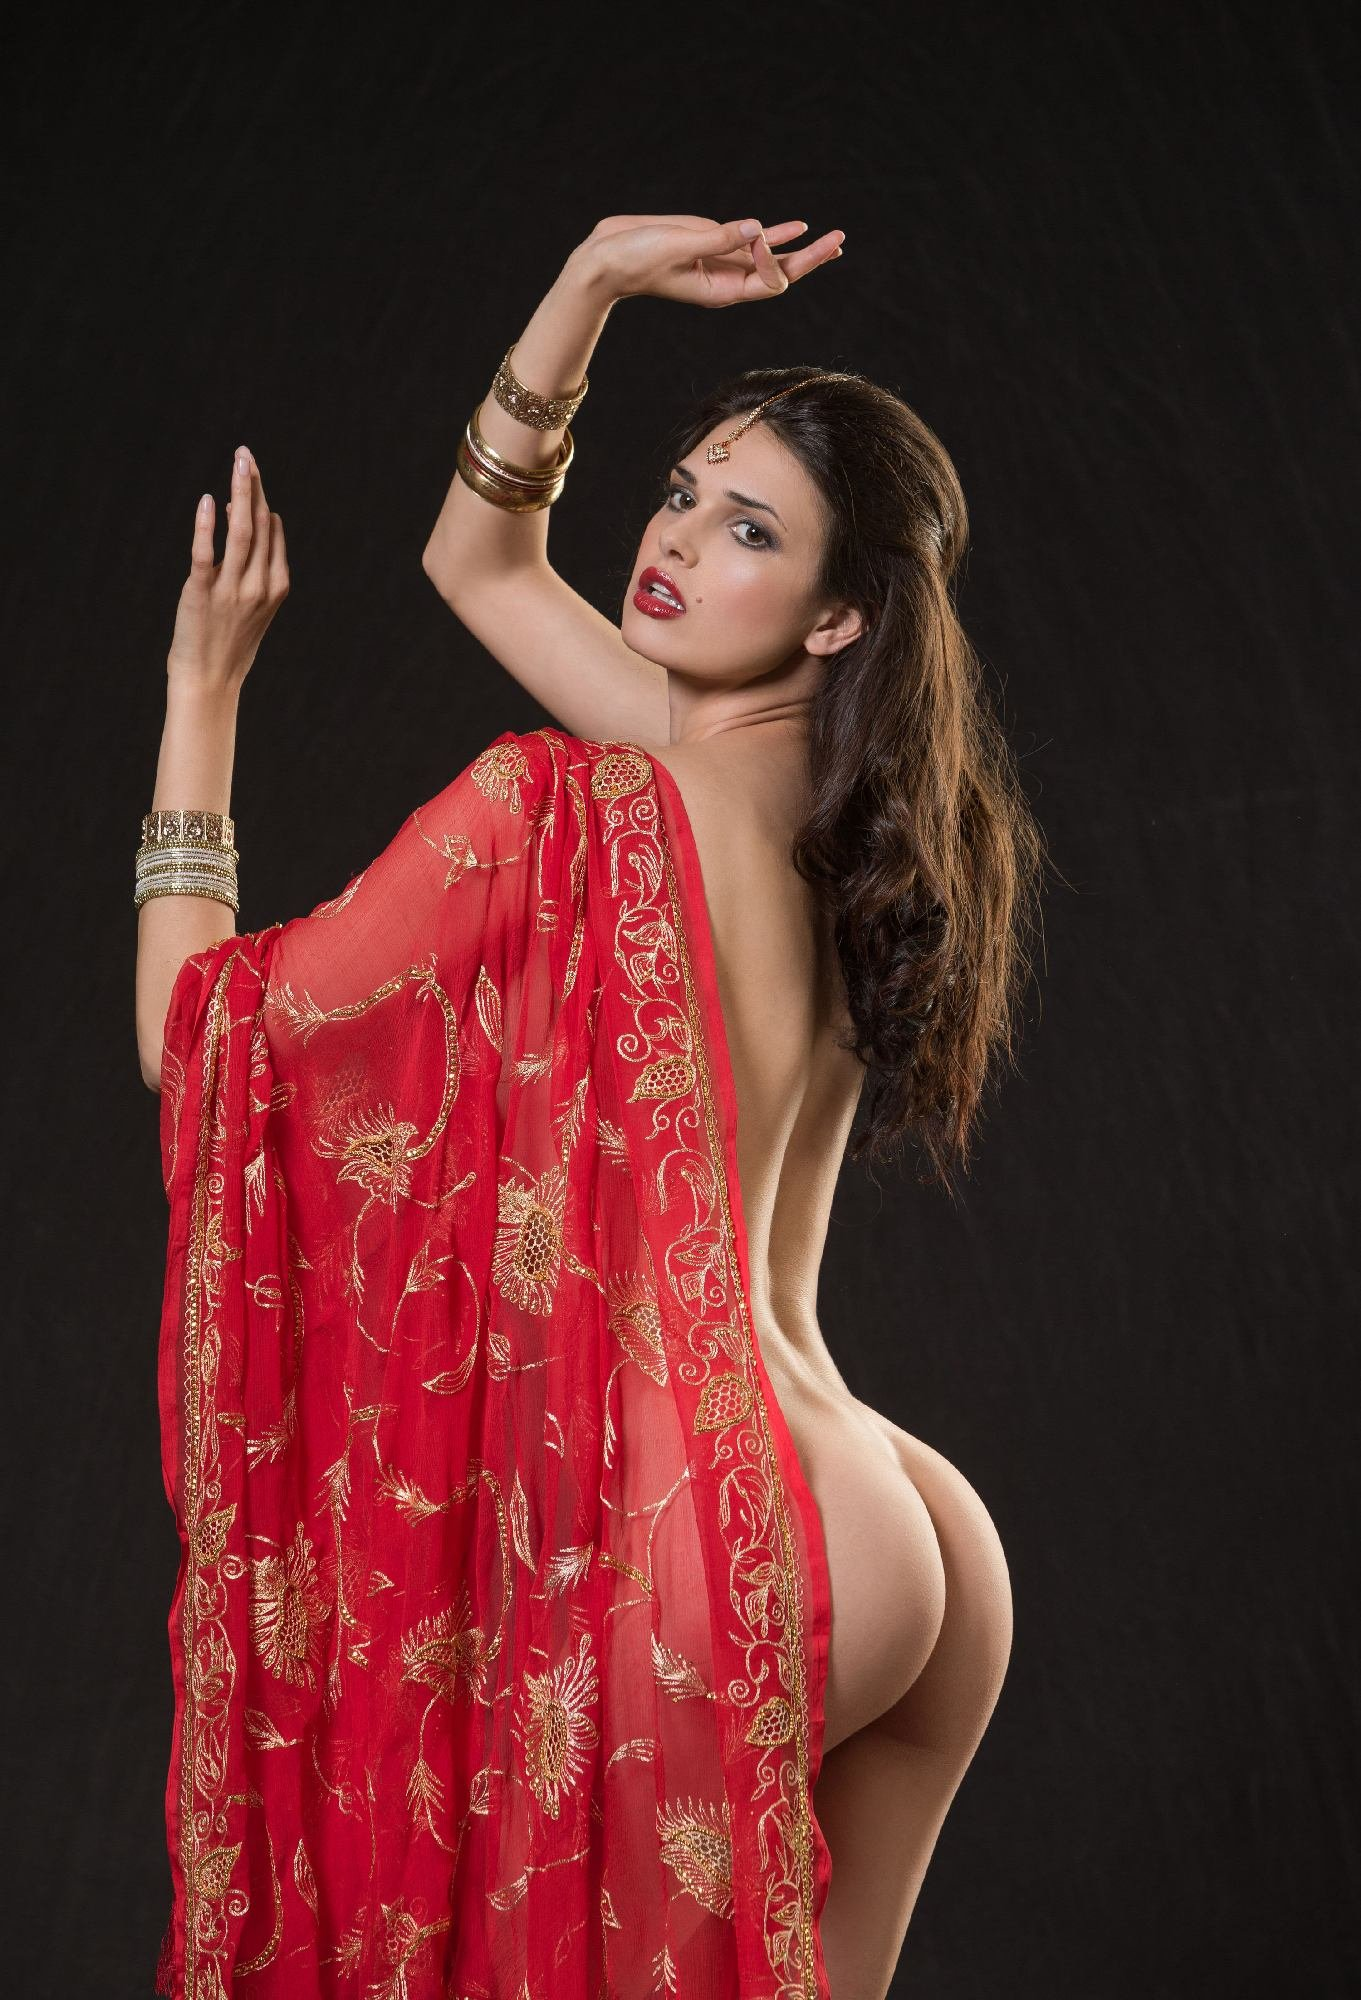 Nude red indian women photos, paki british porn models